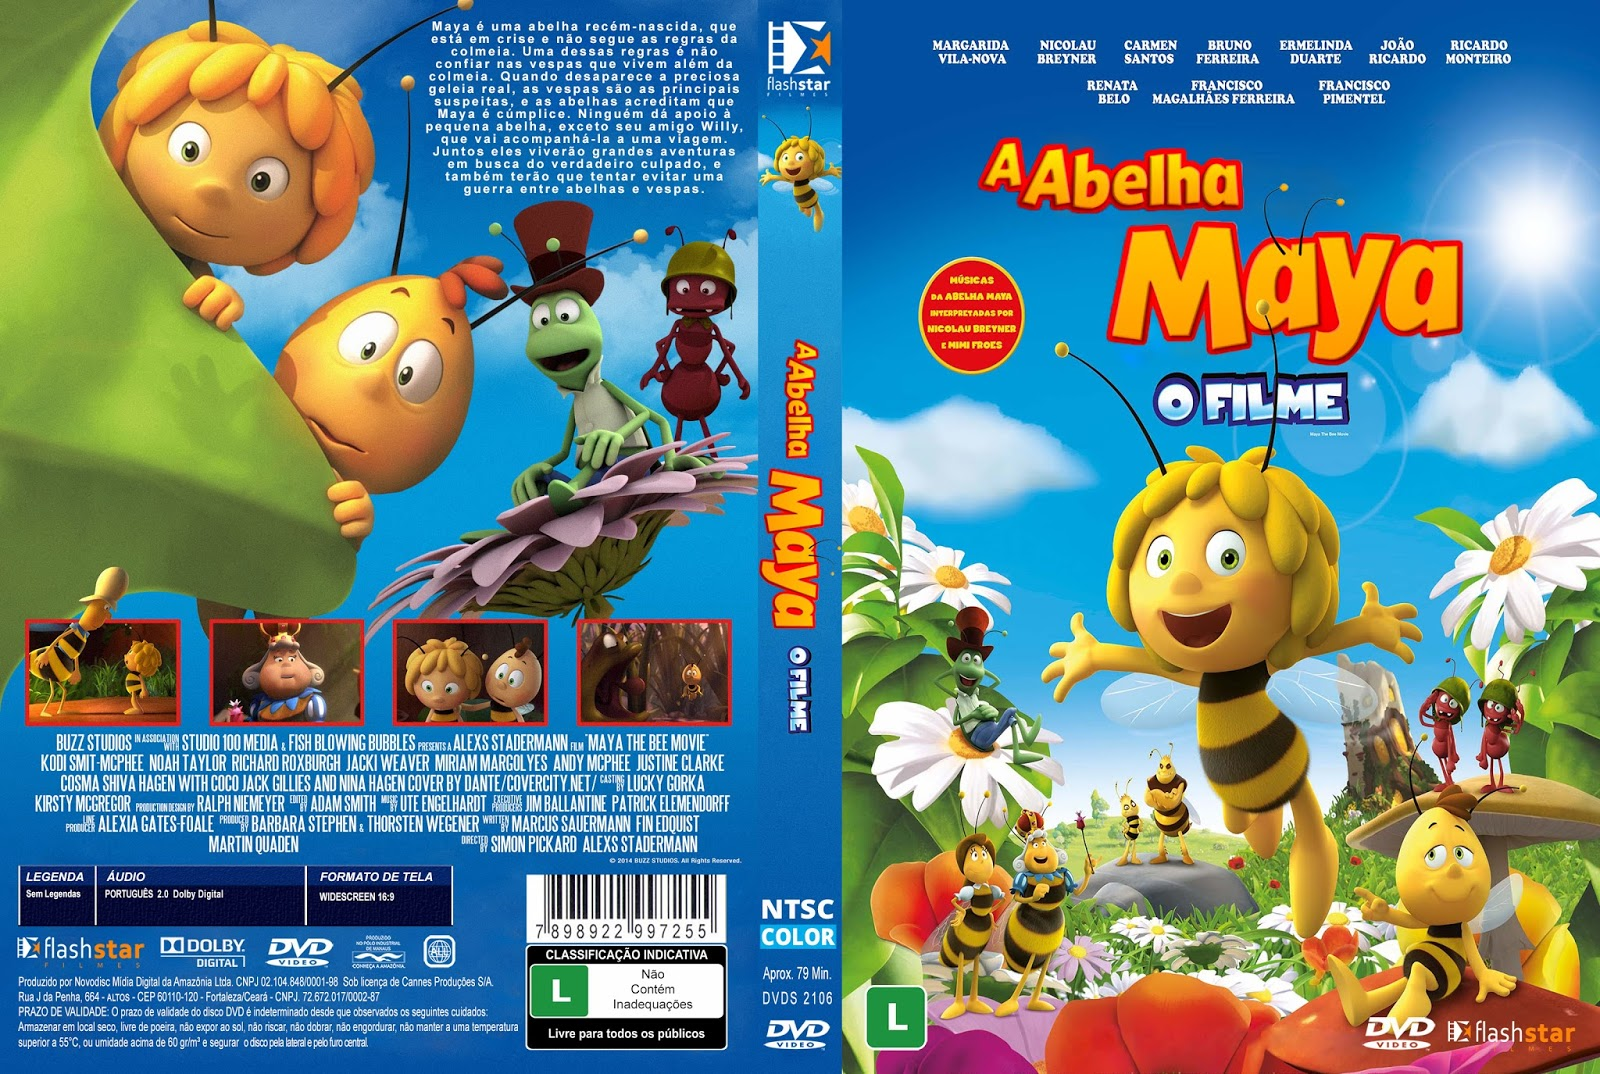 Download A Abelha Maya O Filme DVD-R